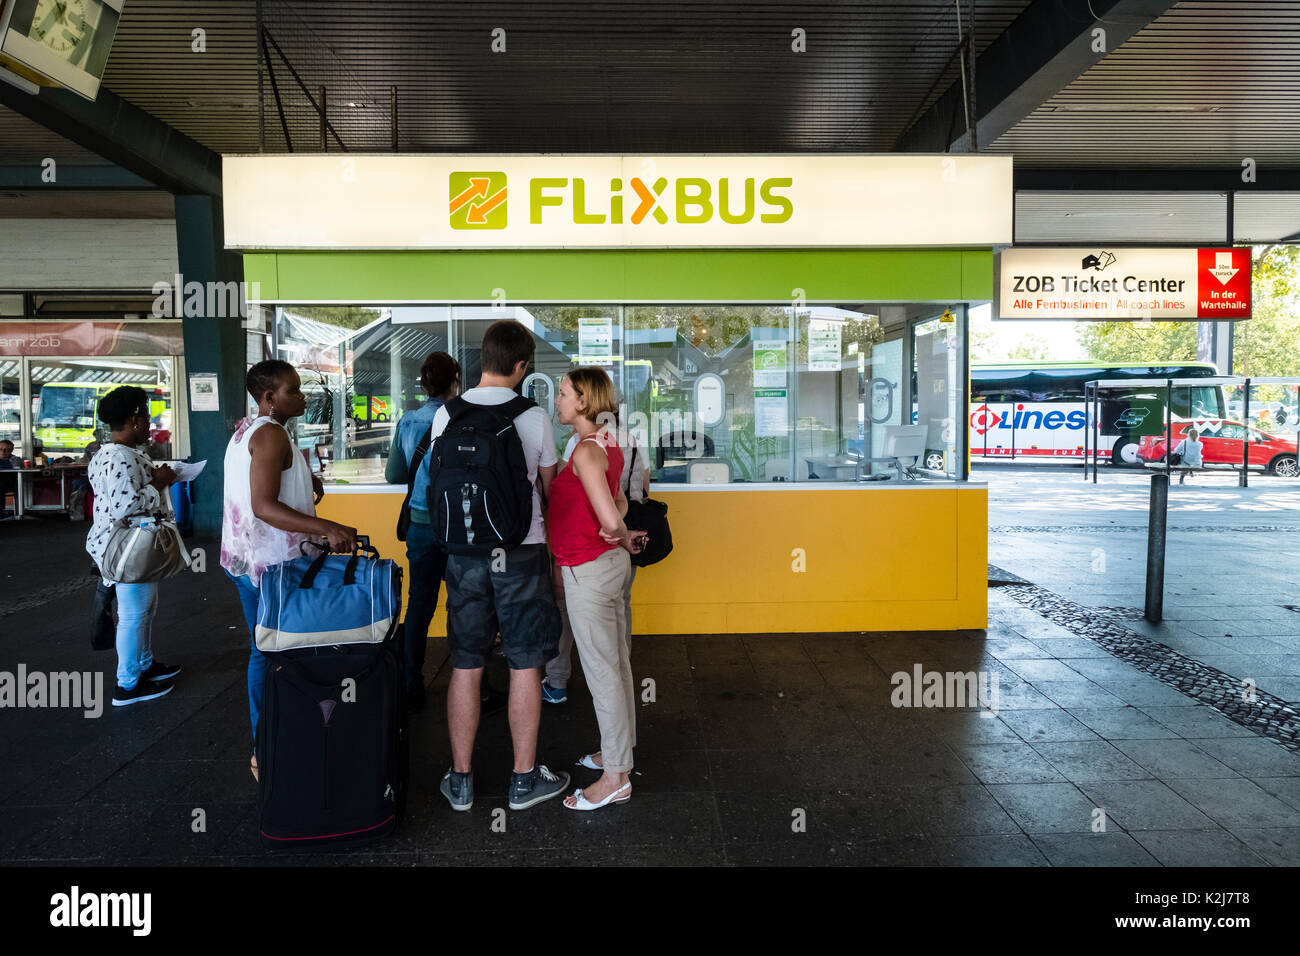 Flixbus ticket office with passengers queuing at Berlin coach station in Germany - Stock Image